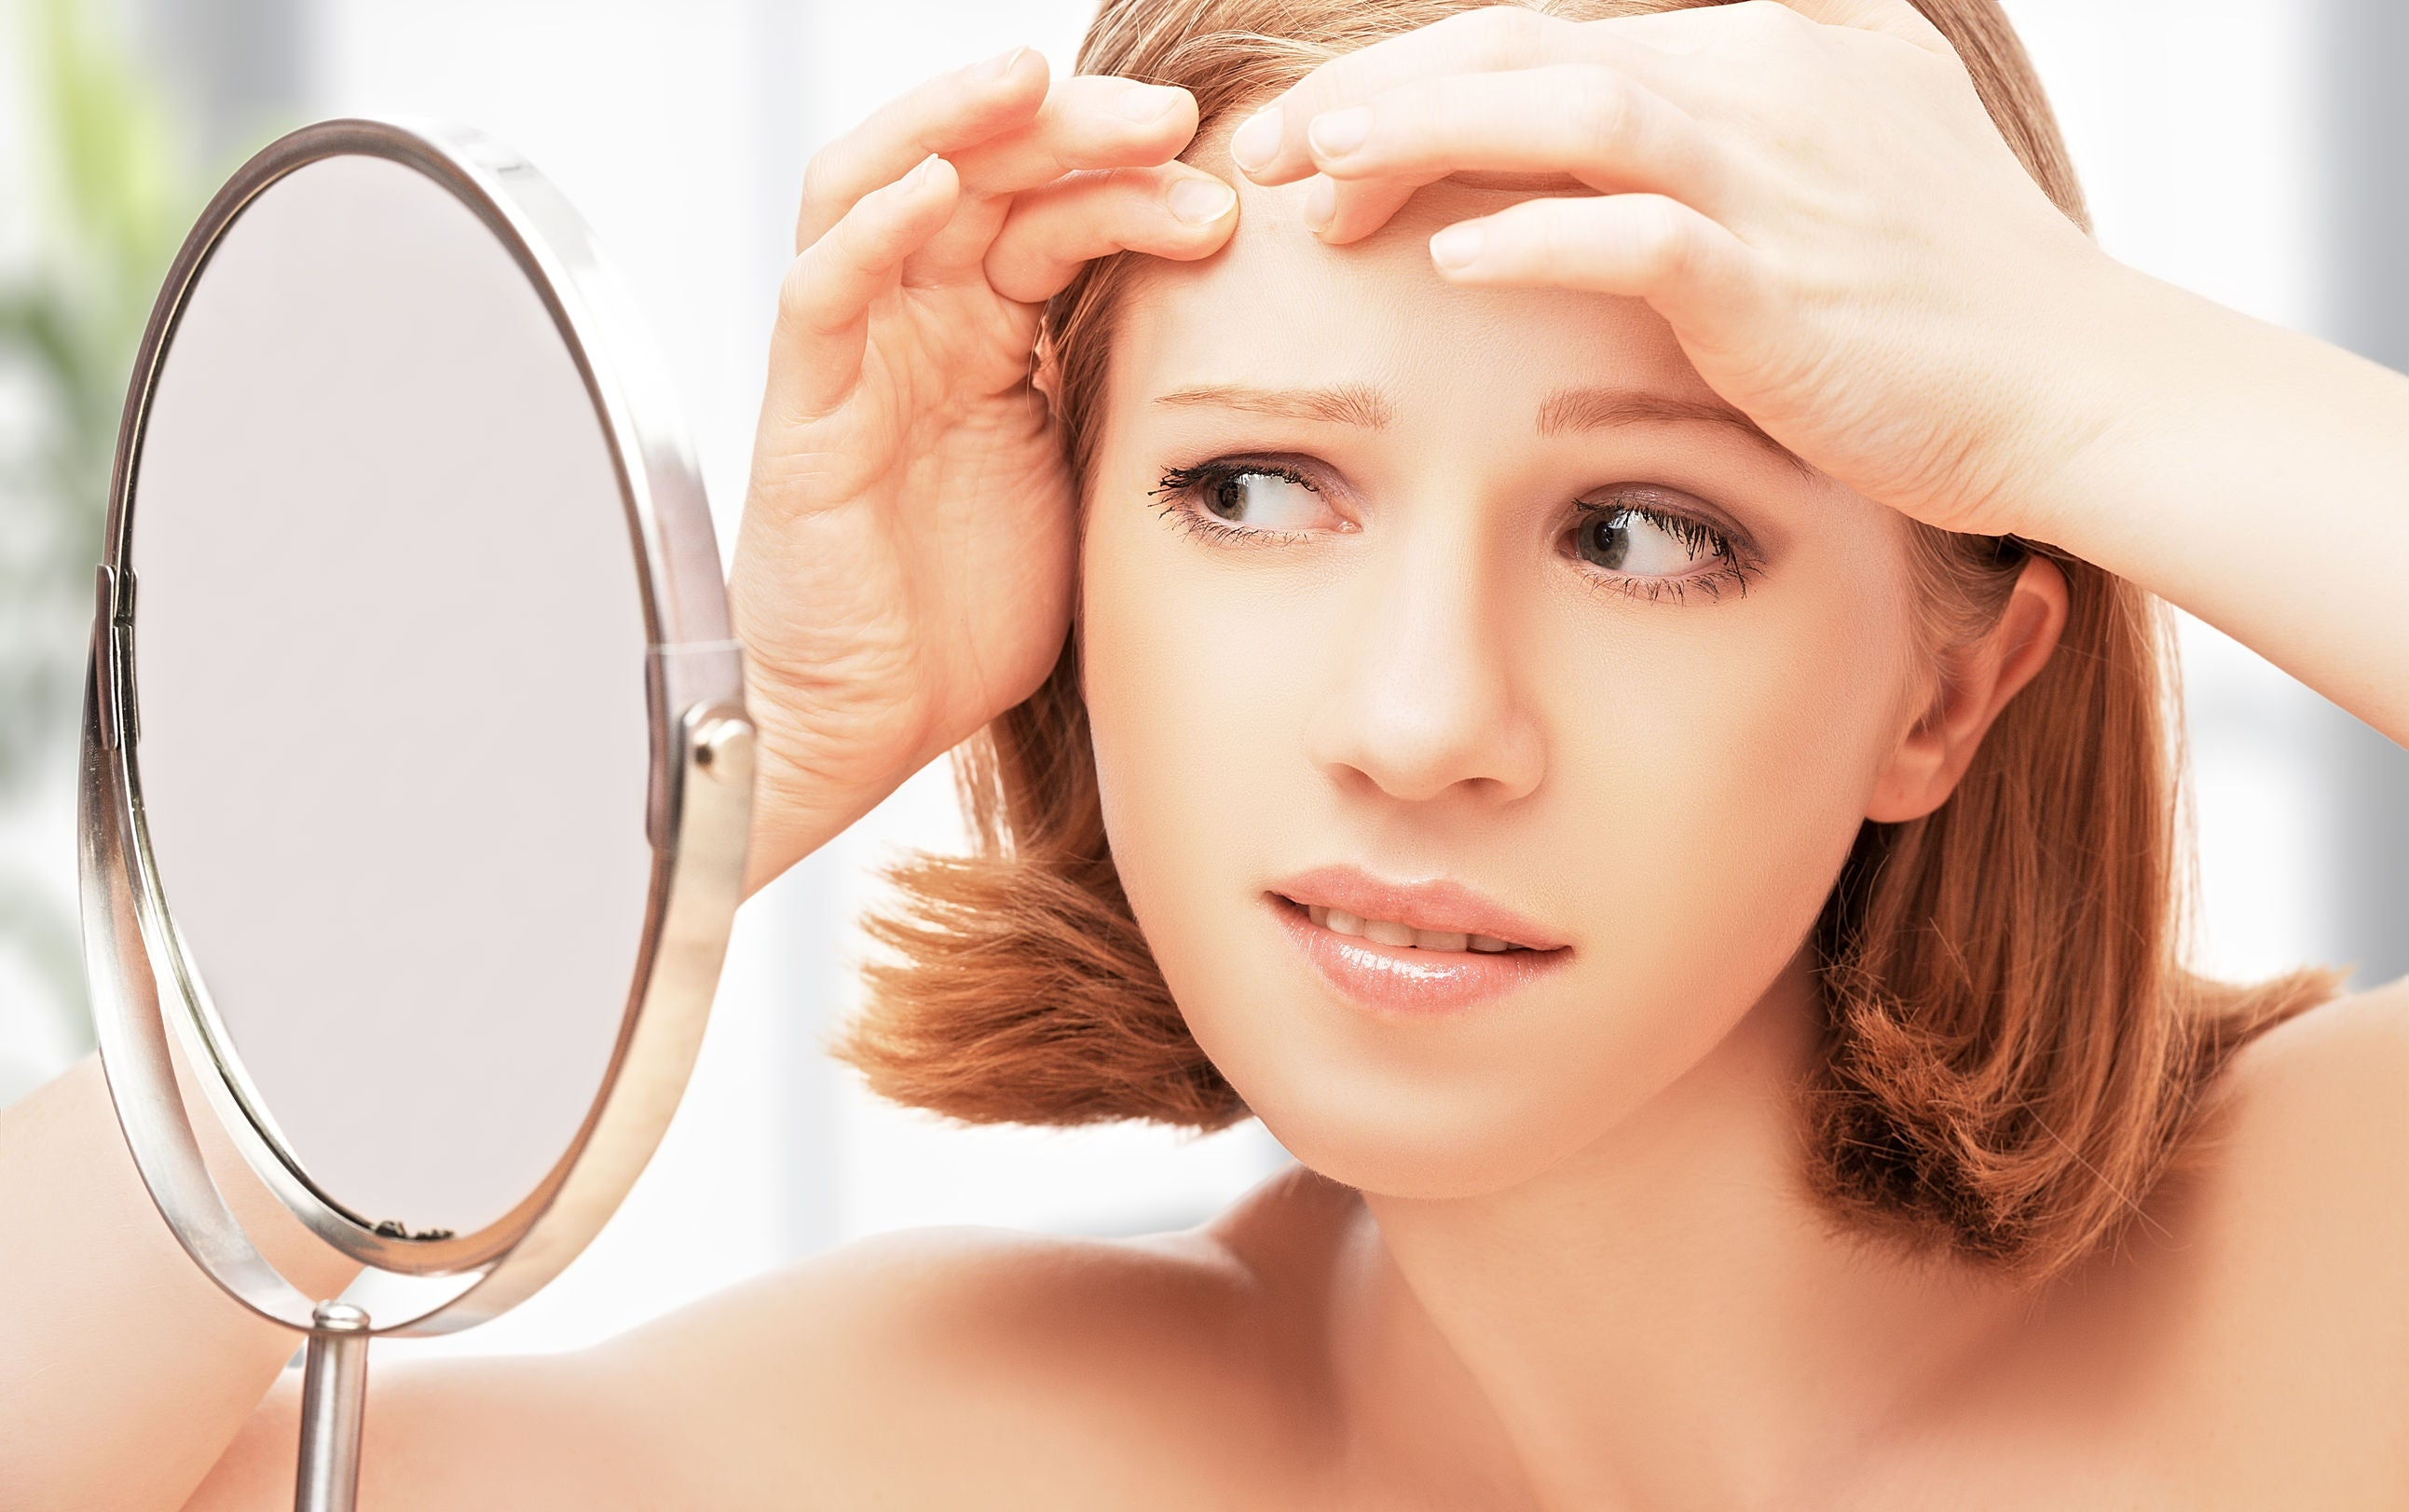 Acne Oral Medication For Adult Women